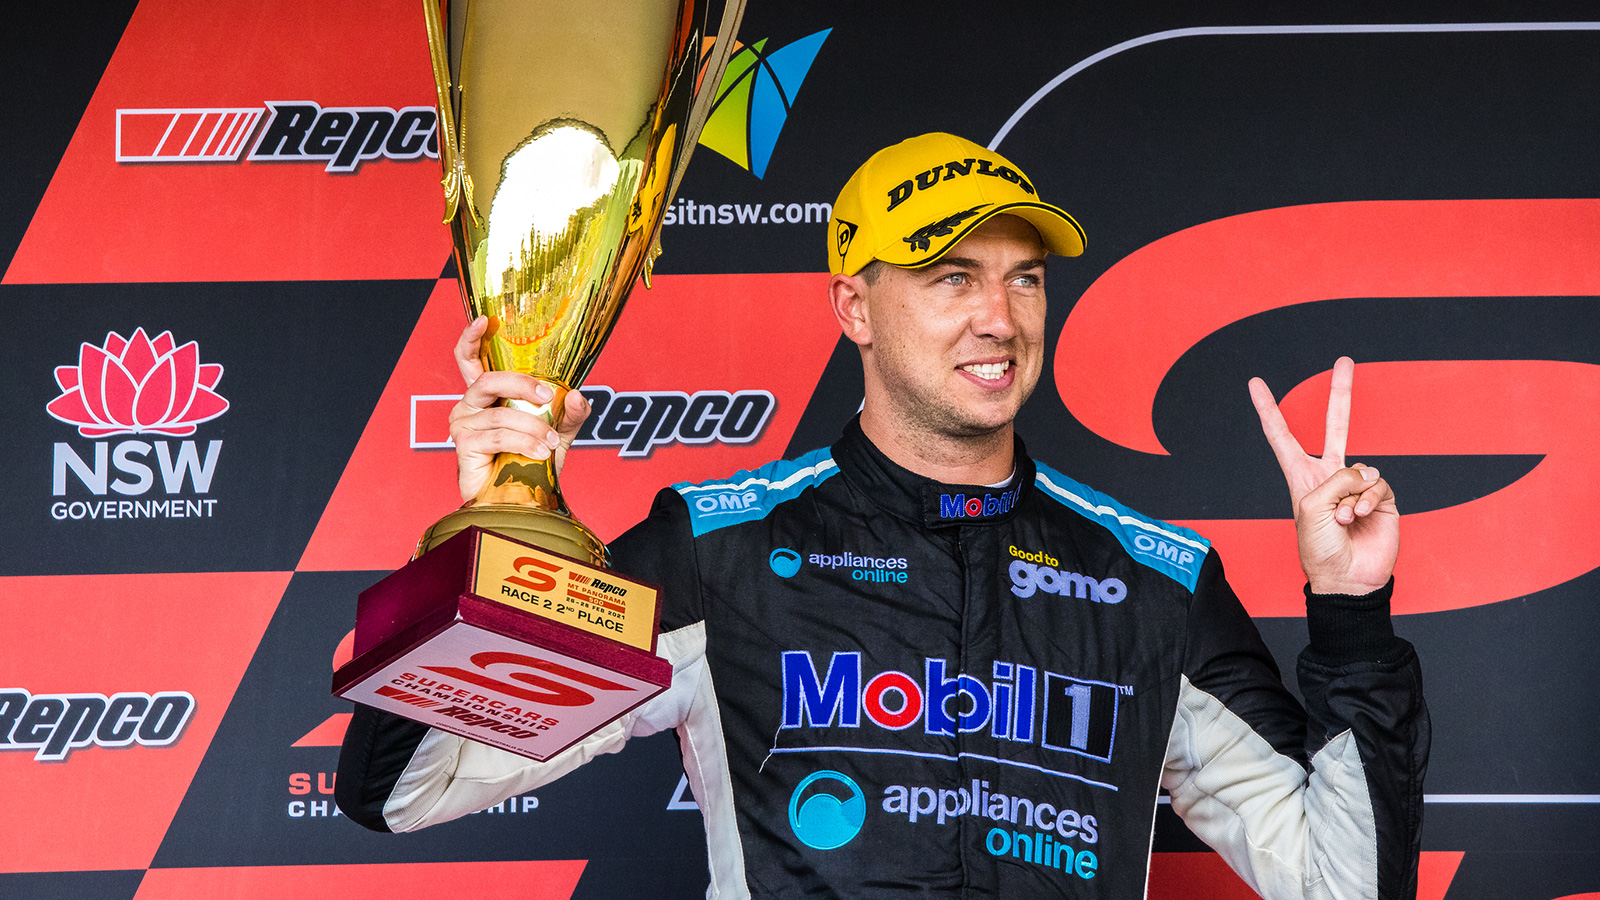 Podium to Start the Year for Mostert